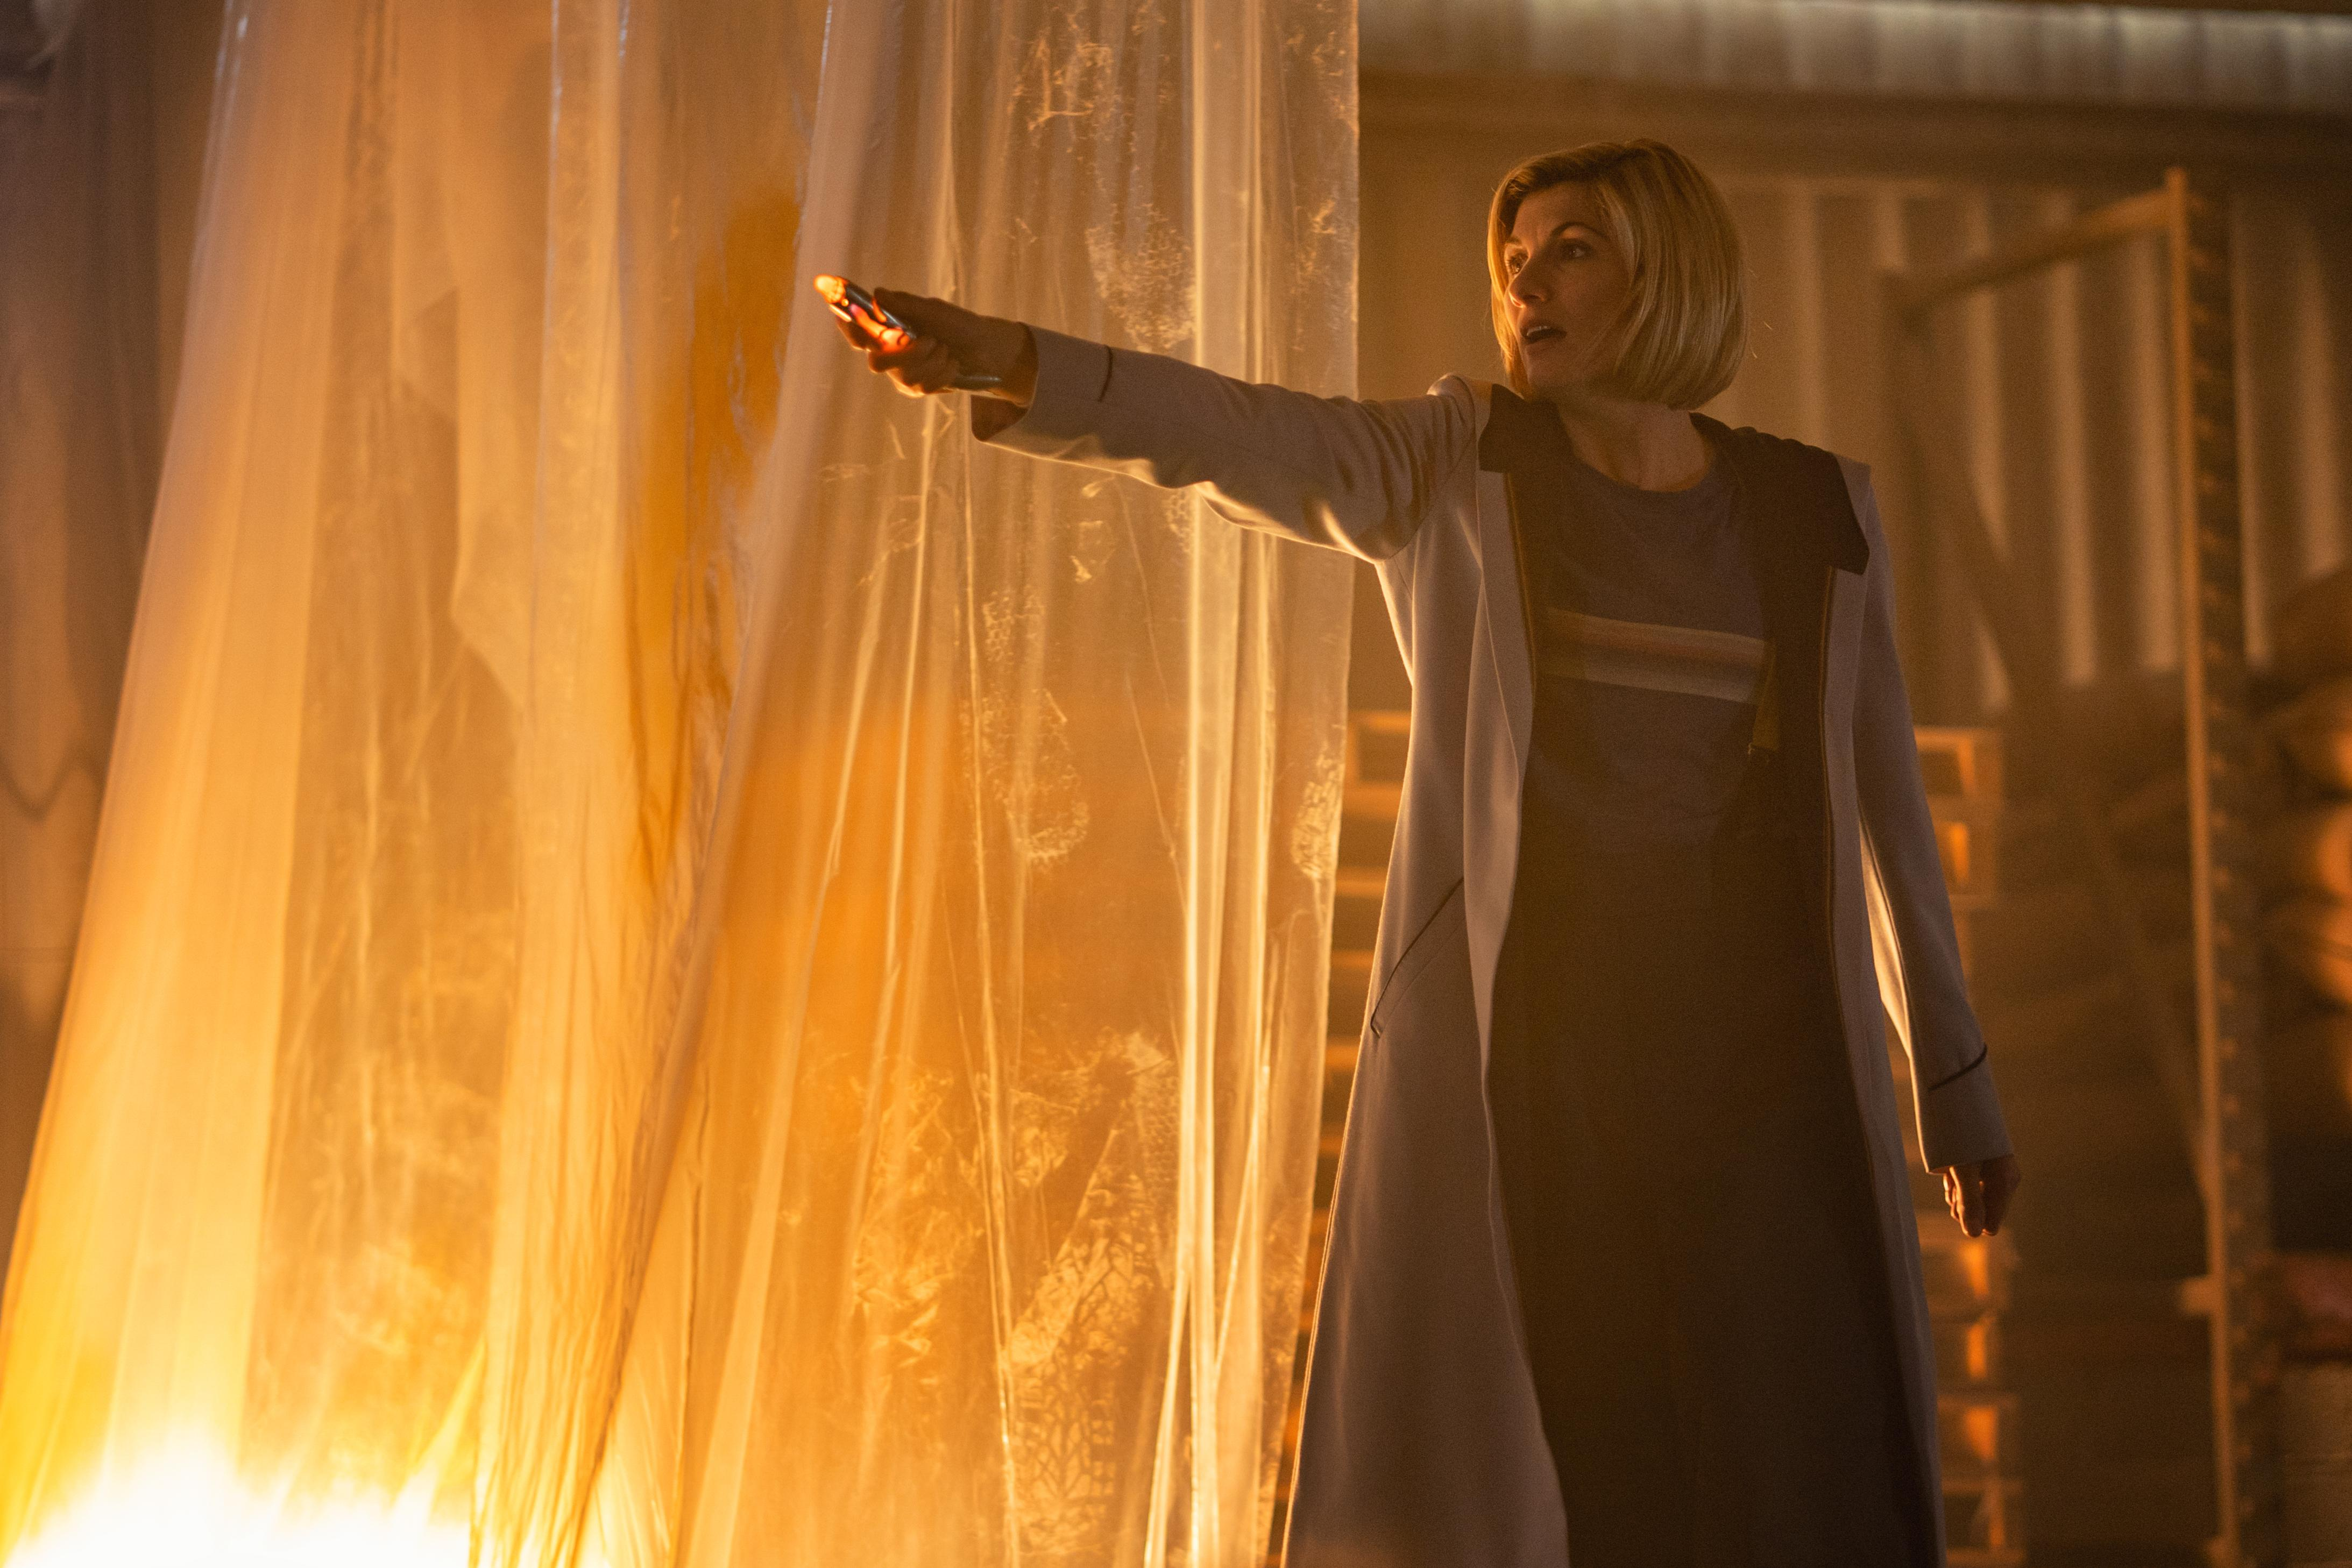 Bbc America Doctor Who Christmas Special 2020 Dr Who Christmas Special 2020 Air Date Bbc America   Sndbek